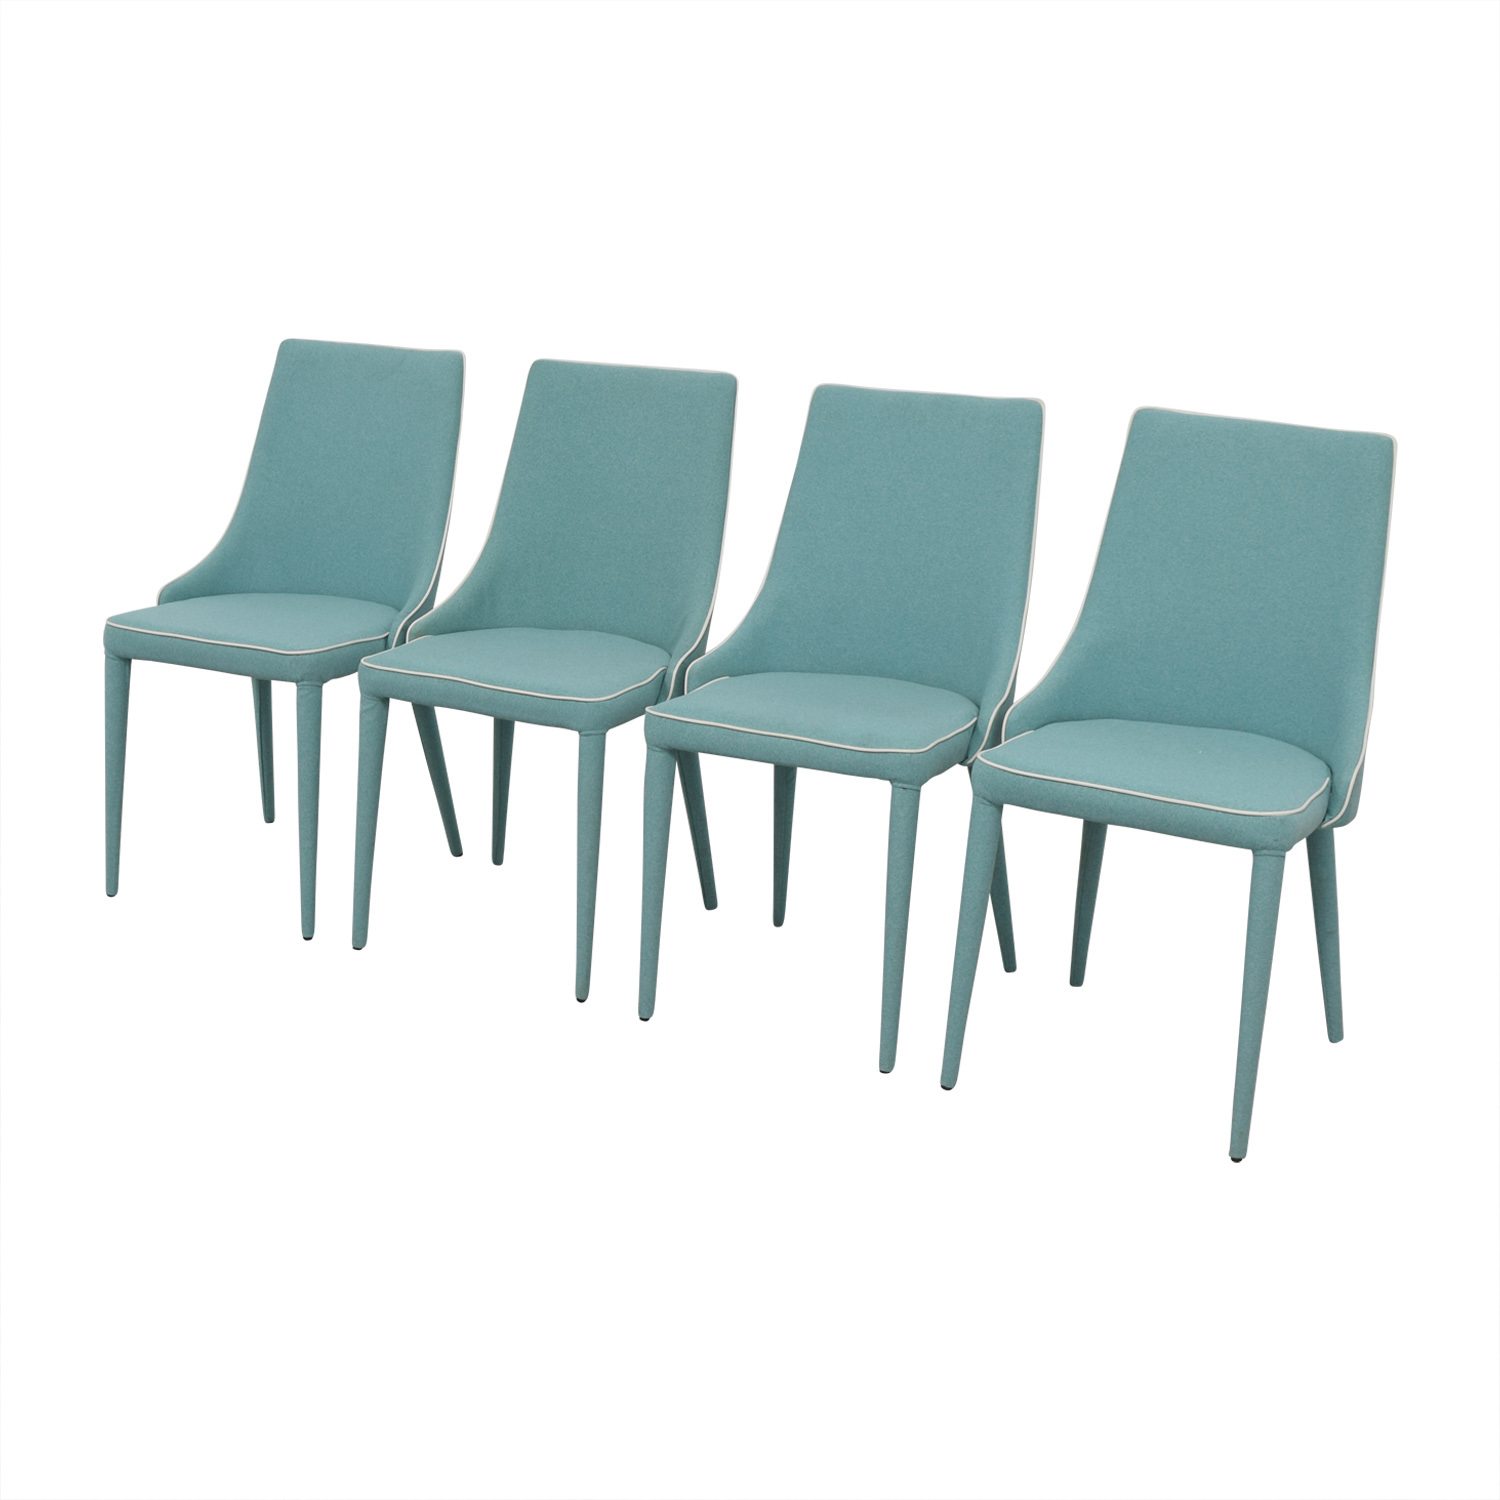 Inmod Inmod Turquoise Fabric Chair used